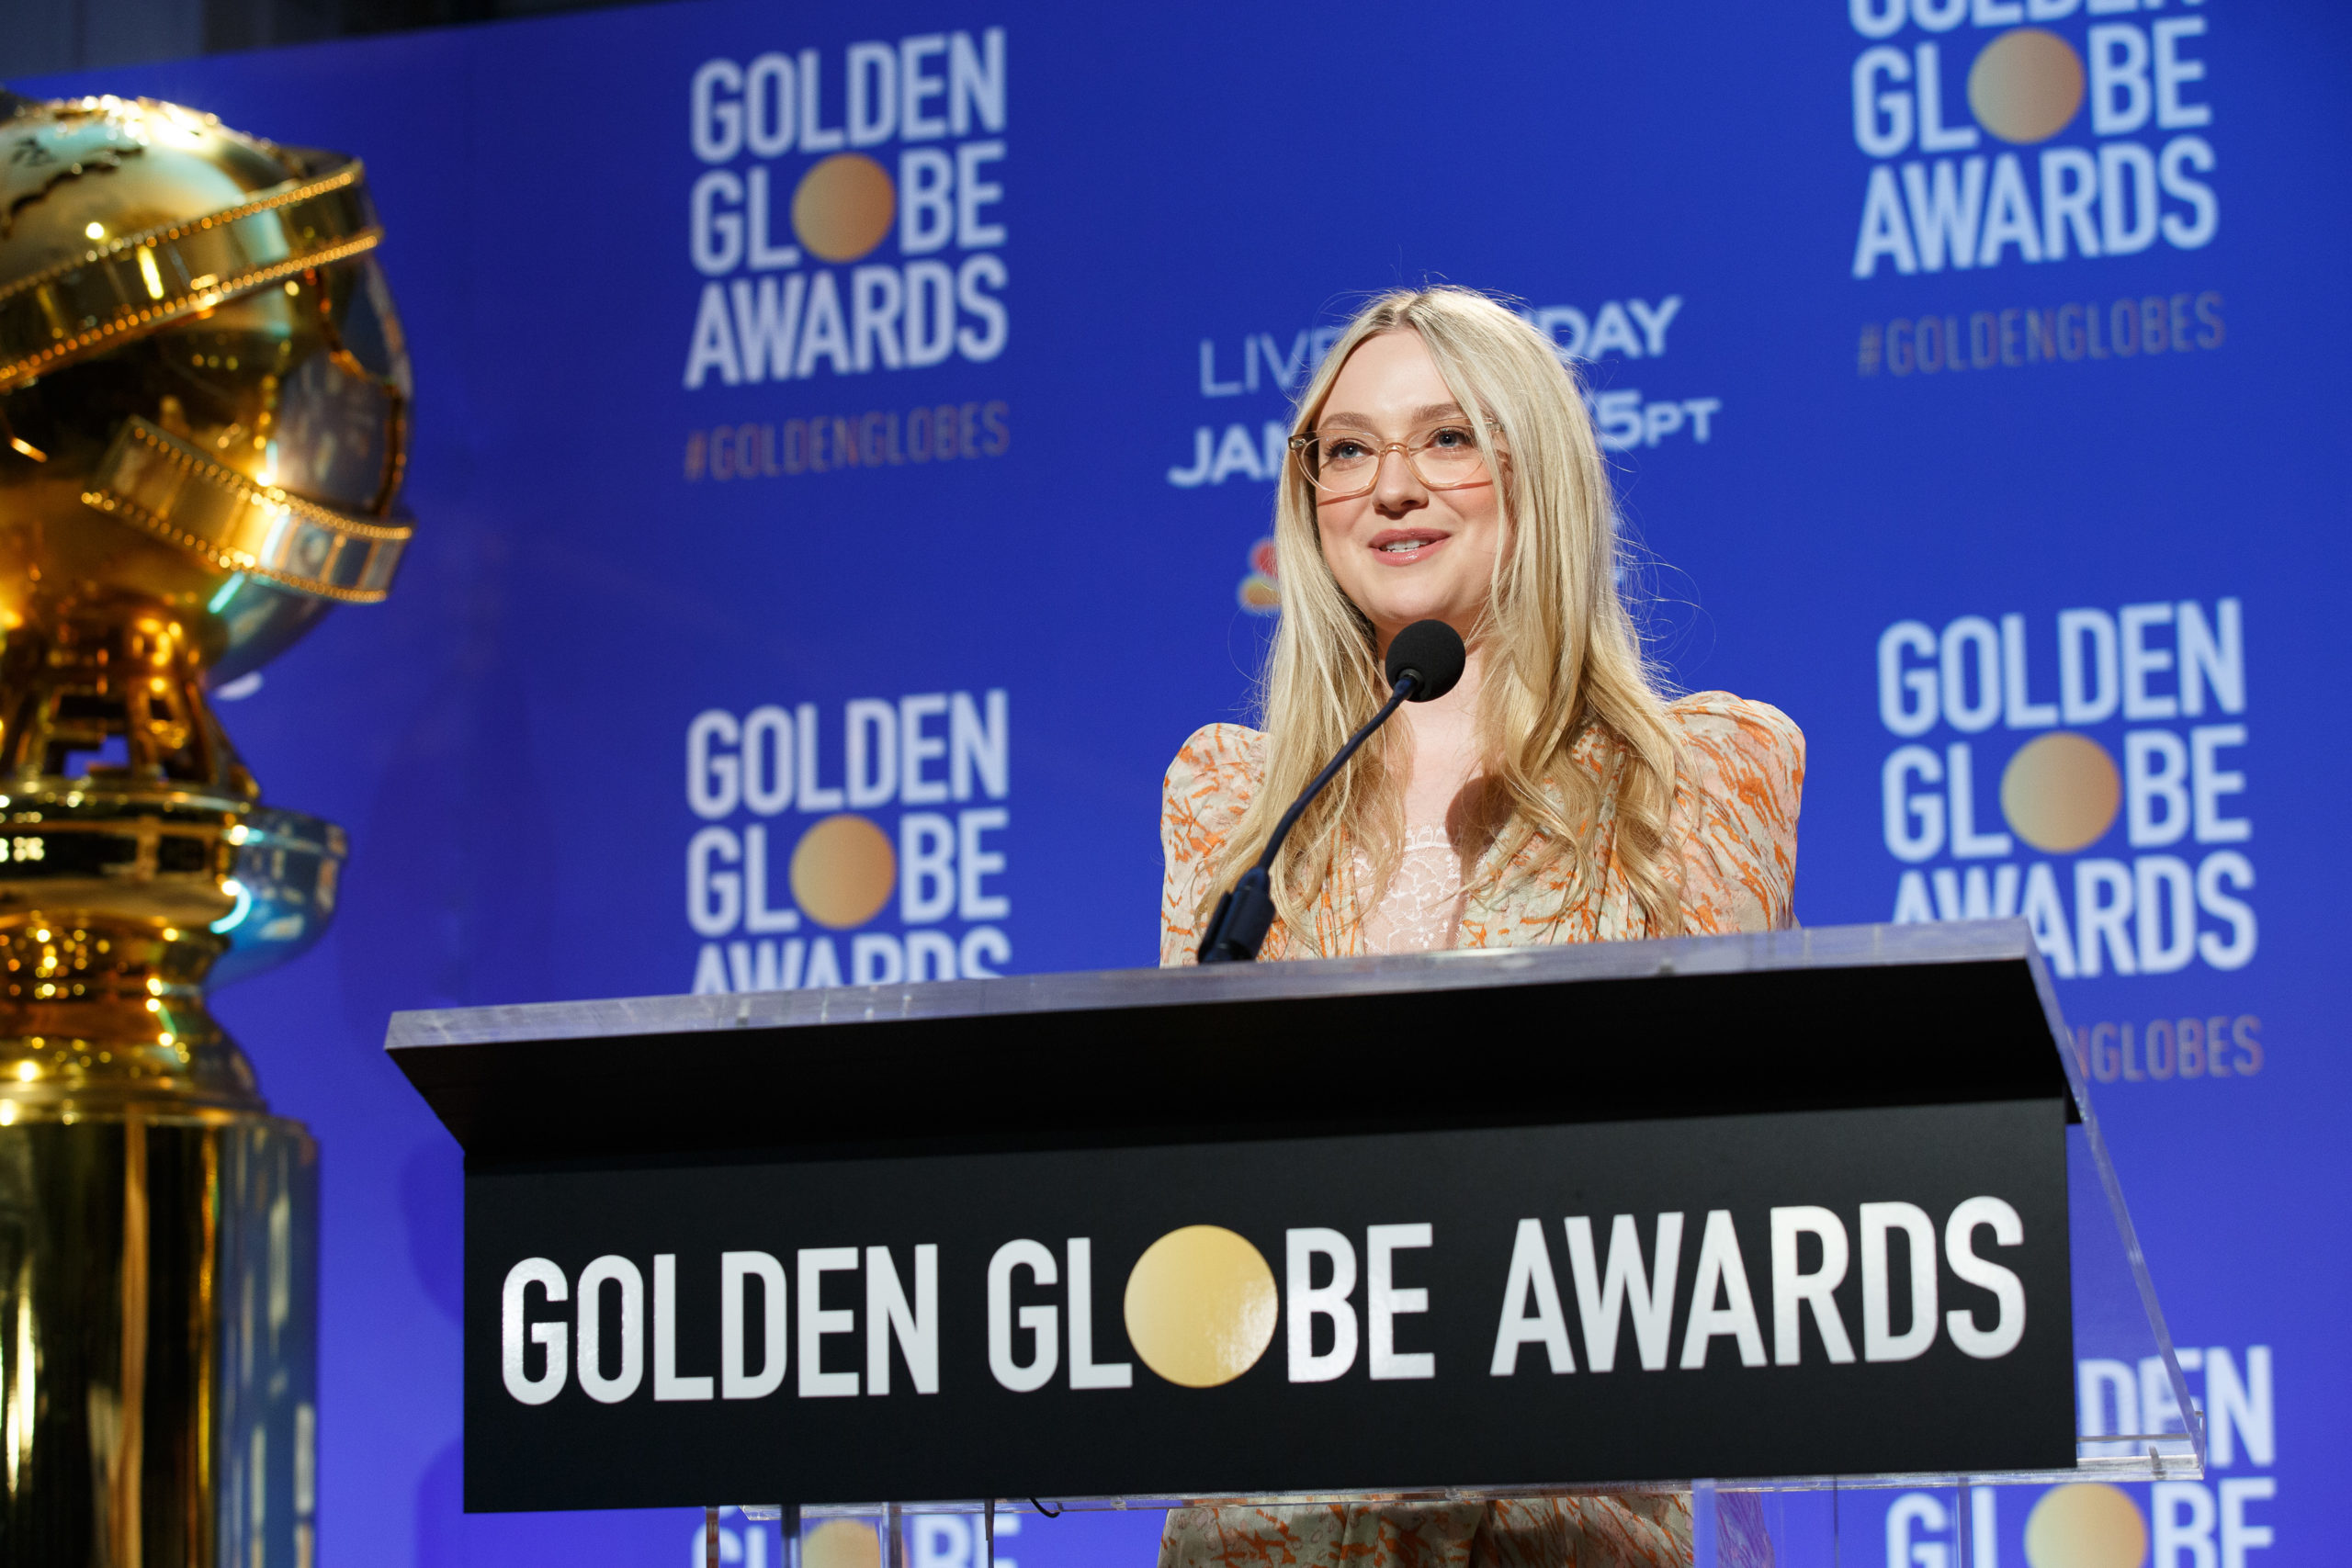 Dakota Fanning at the 77th annual Golden Globe Awards nominations on Monday December 9, 2019 from the Beverly Hilton Hotel in Beverly Hills, CA.